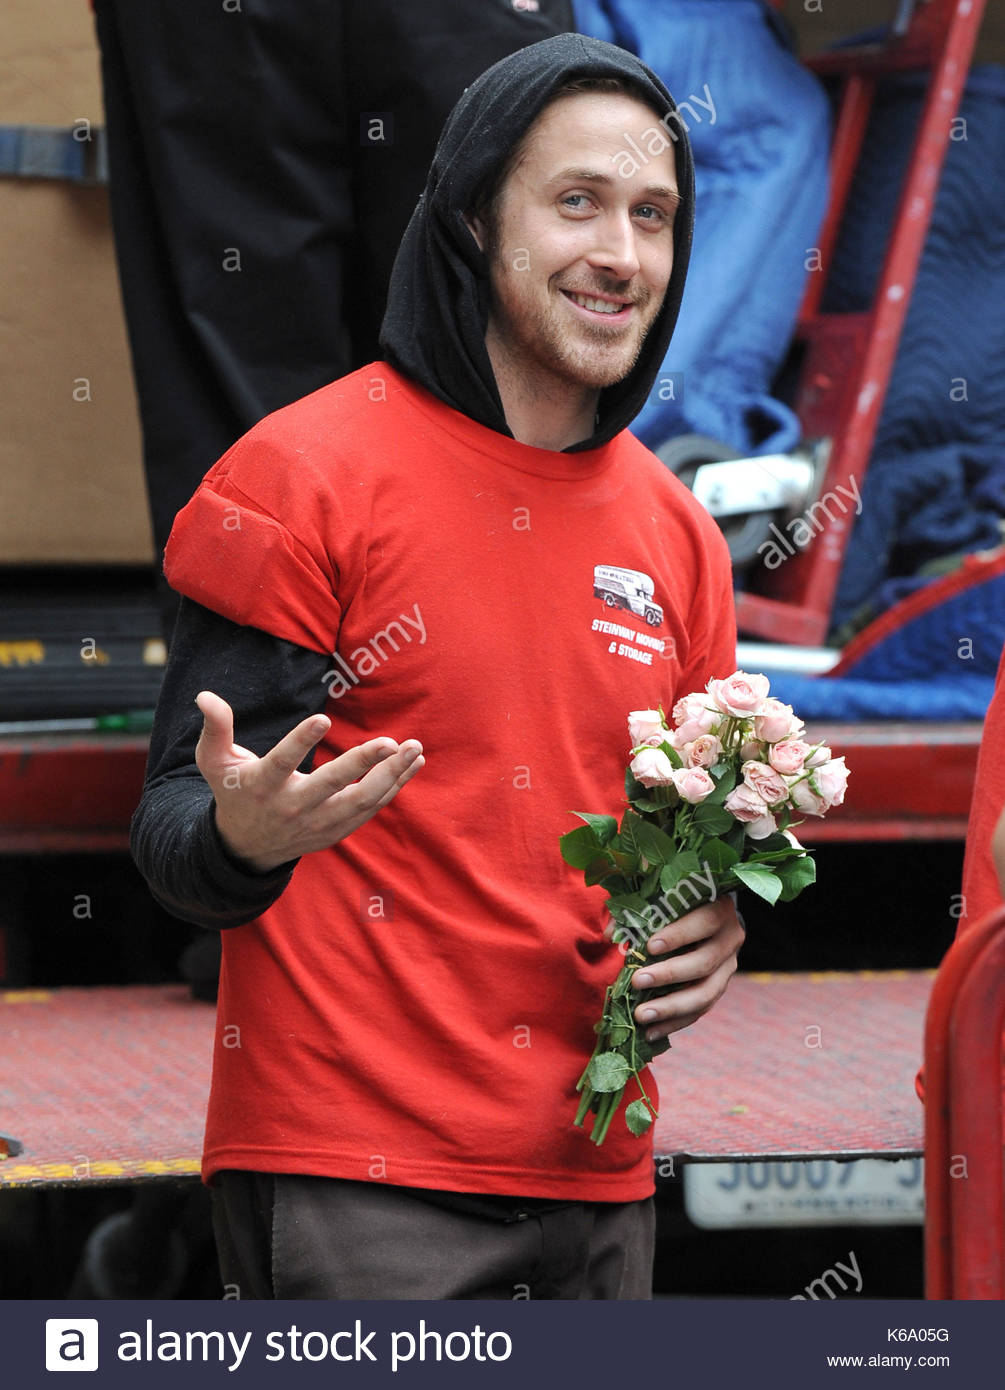 Ryan Gosling. As Ryan Gosling Was Helping His Friend Move Out Of His  Apartment He Got A Nice Surprise From A Fan Who Gave Him Flowers, And In  Return He Gave ...